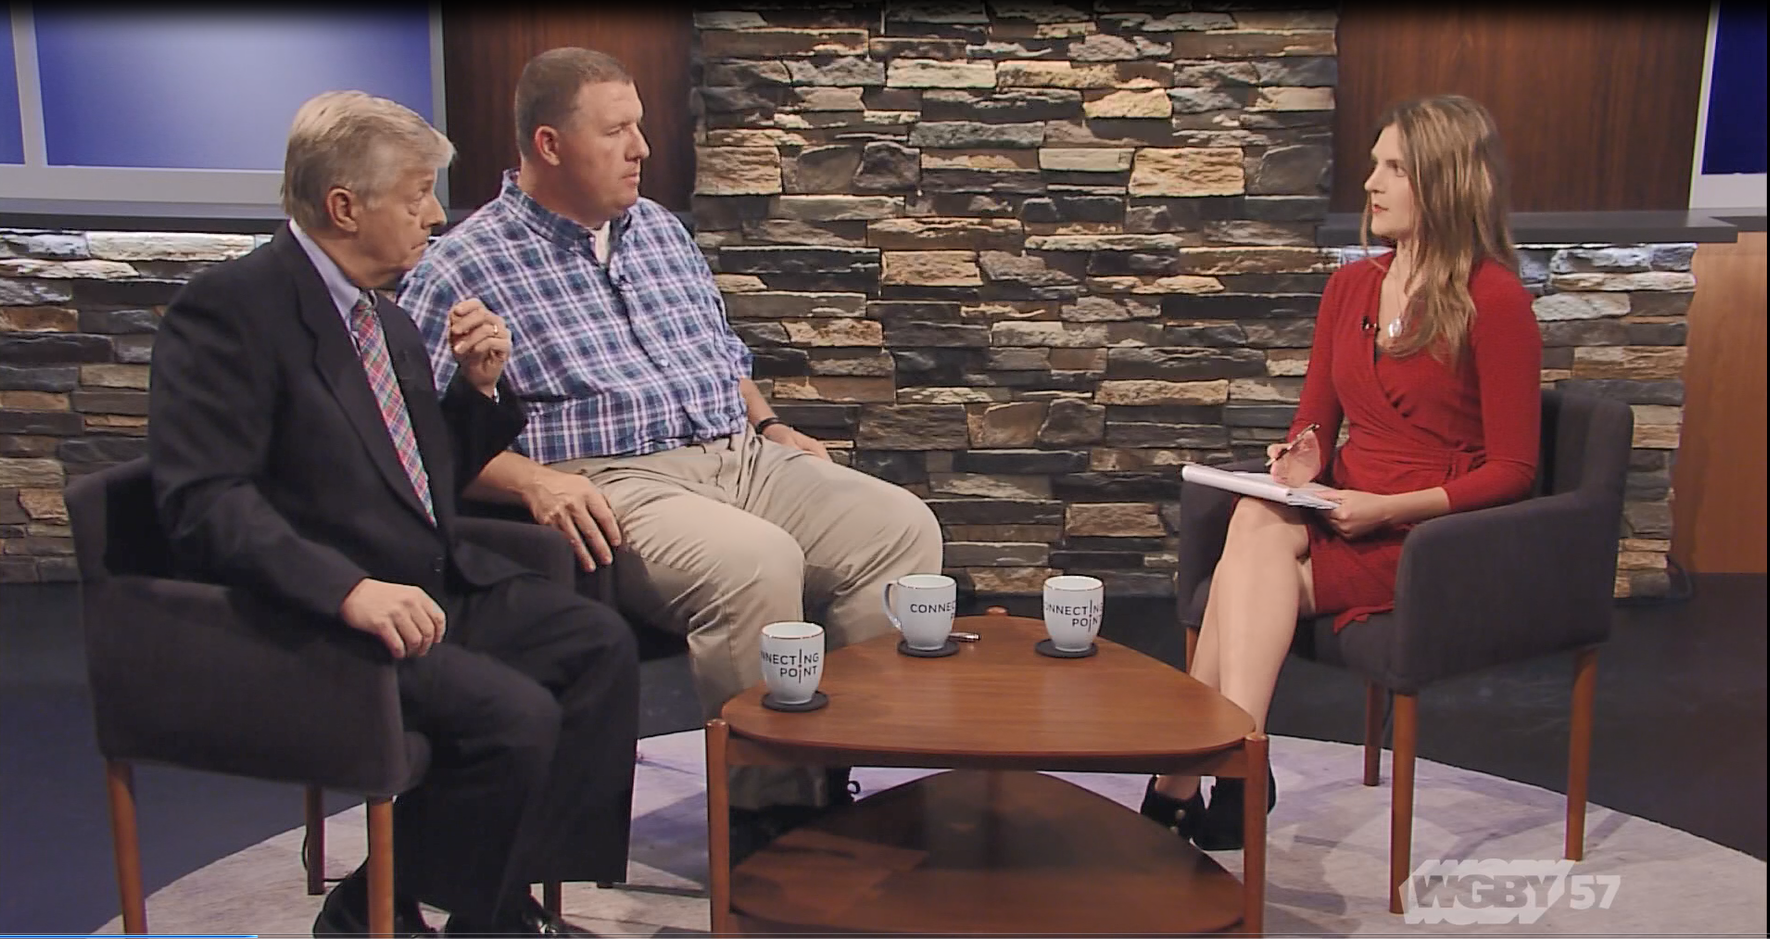 Carrie Saldo talks with Republicans Sid Starks and Kevin Jourdain about the state of the western Mass Republican Party, and the future of the GOP.